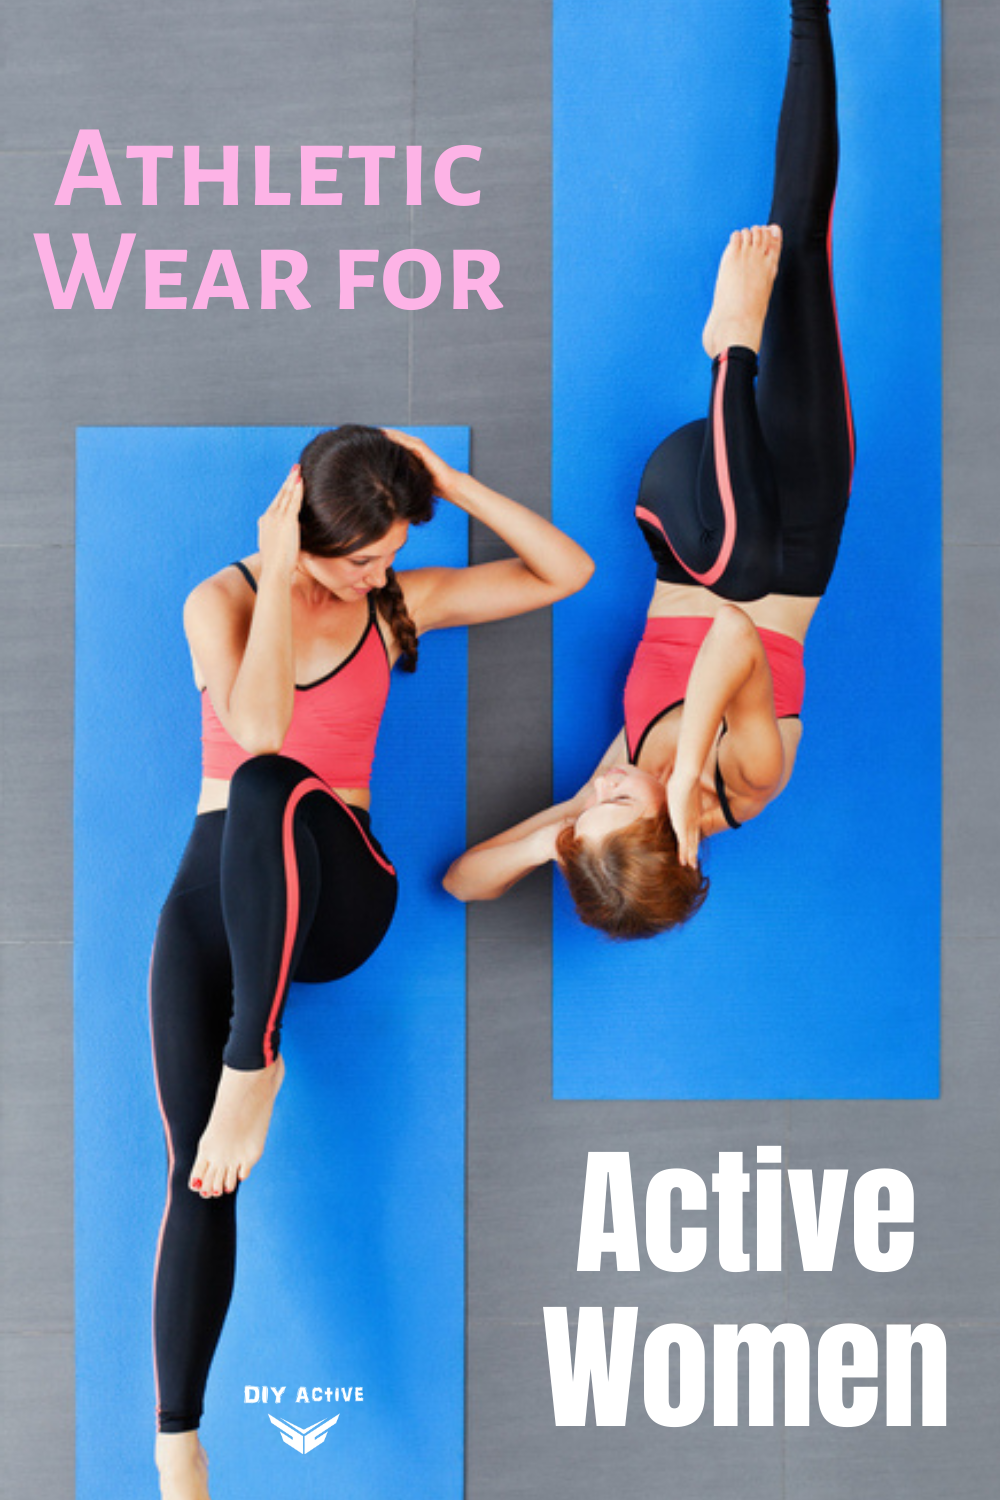 Athletic Wear for Active Women: From Socks to Headbands